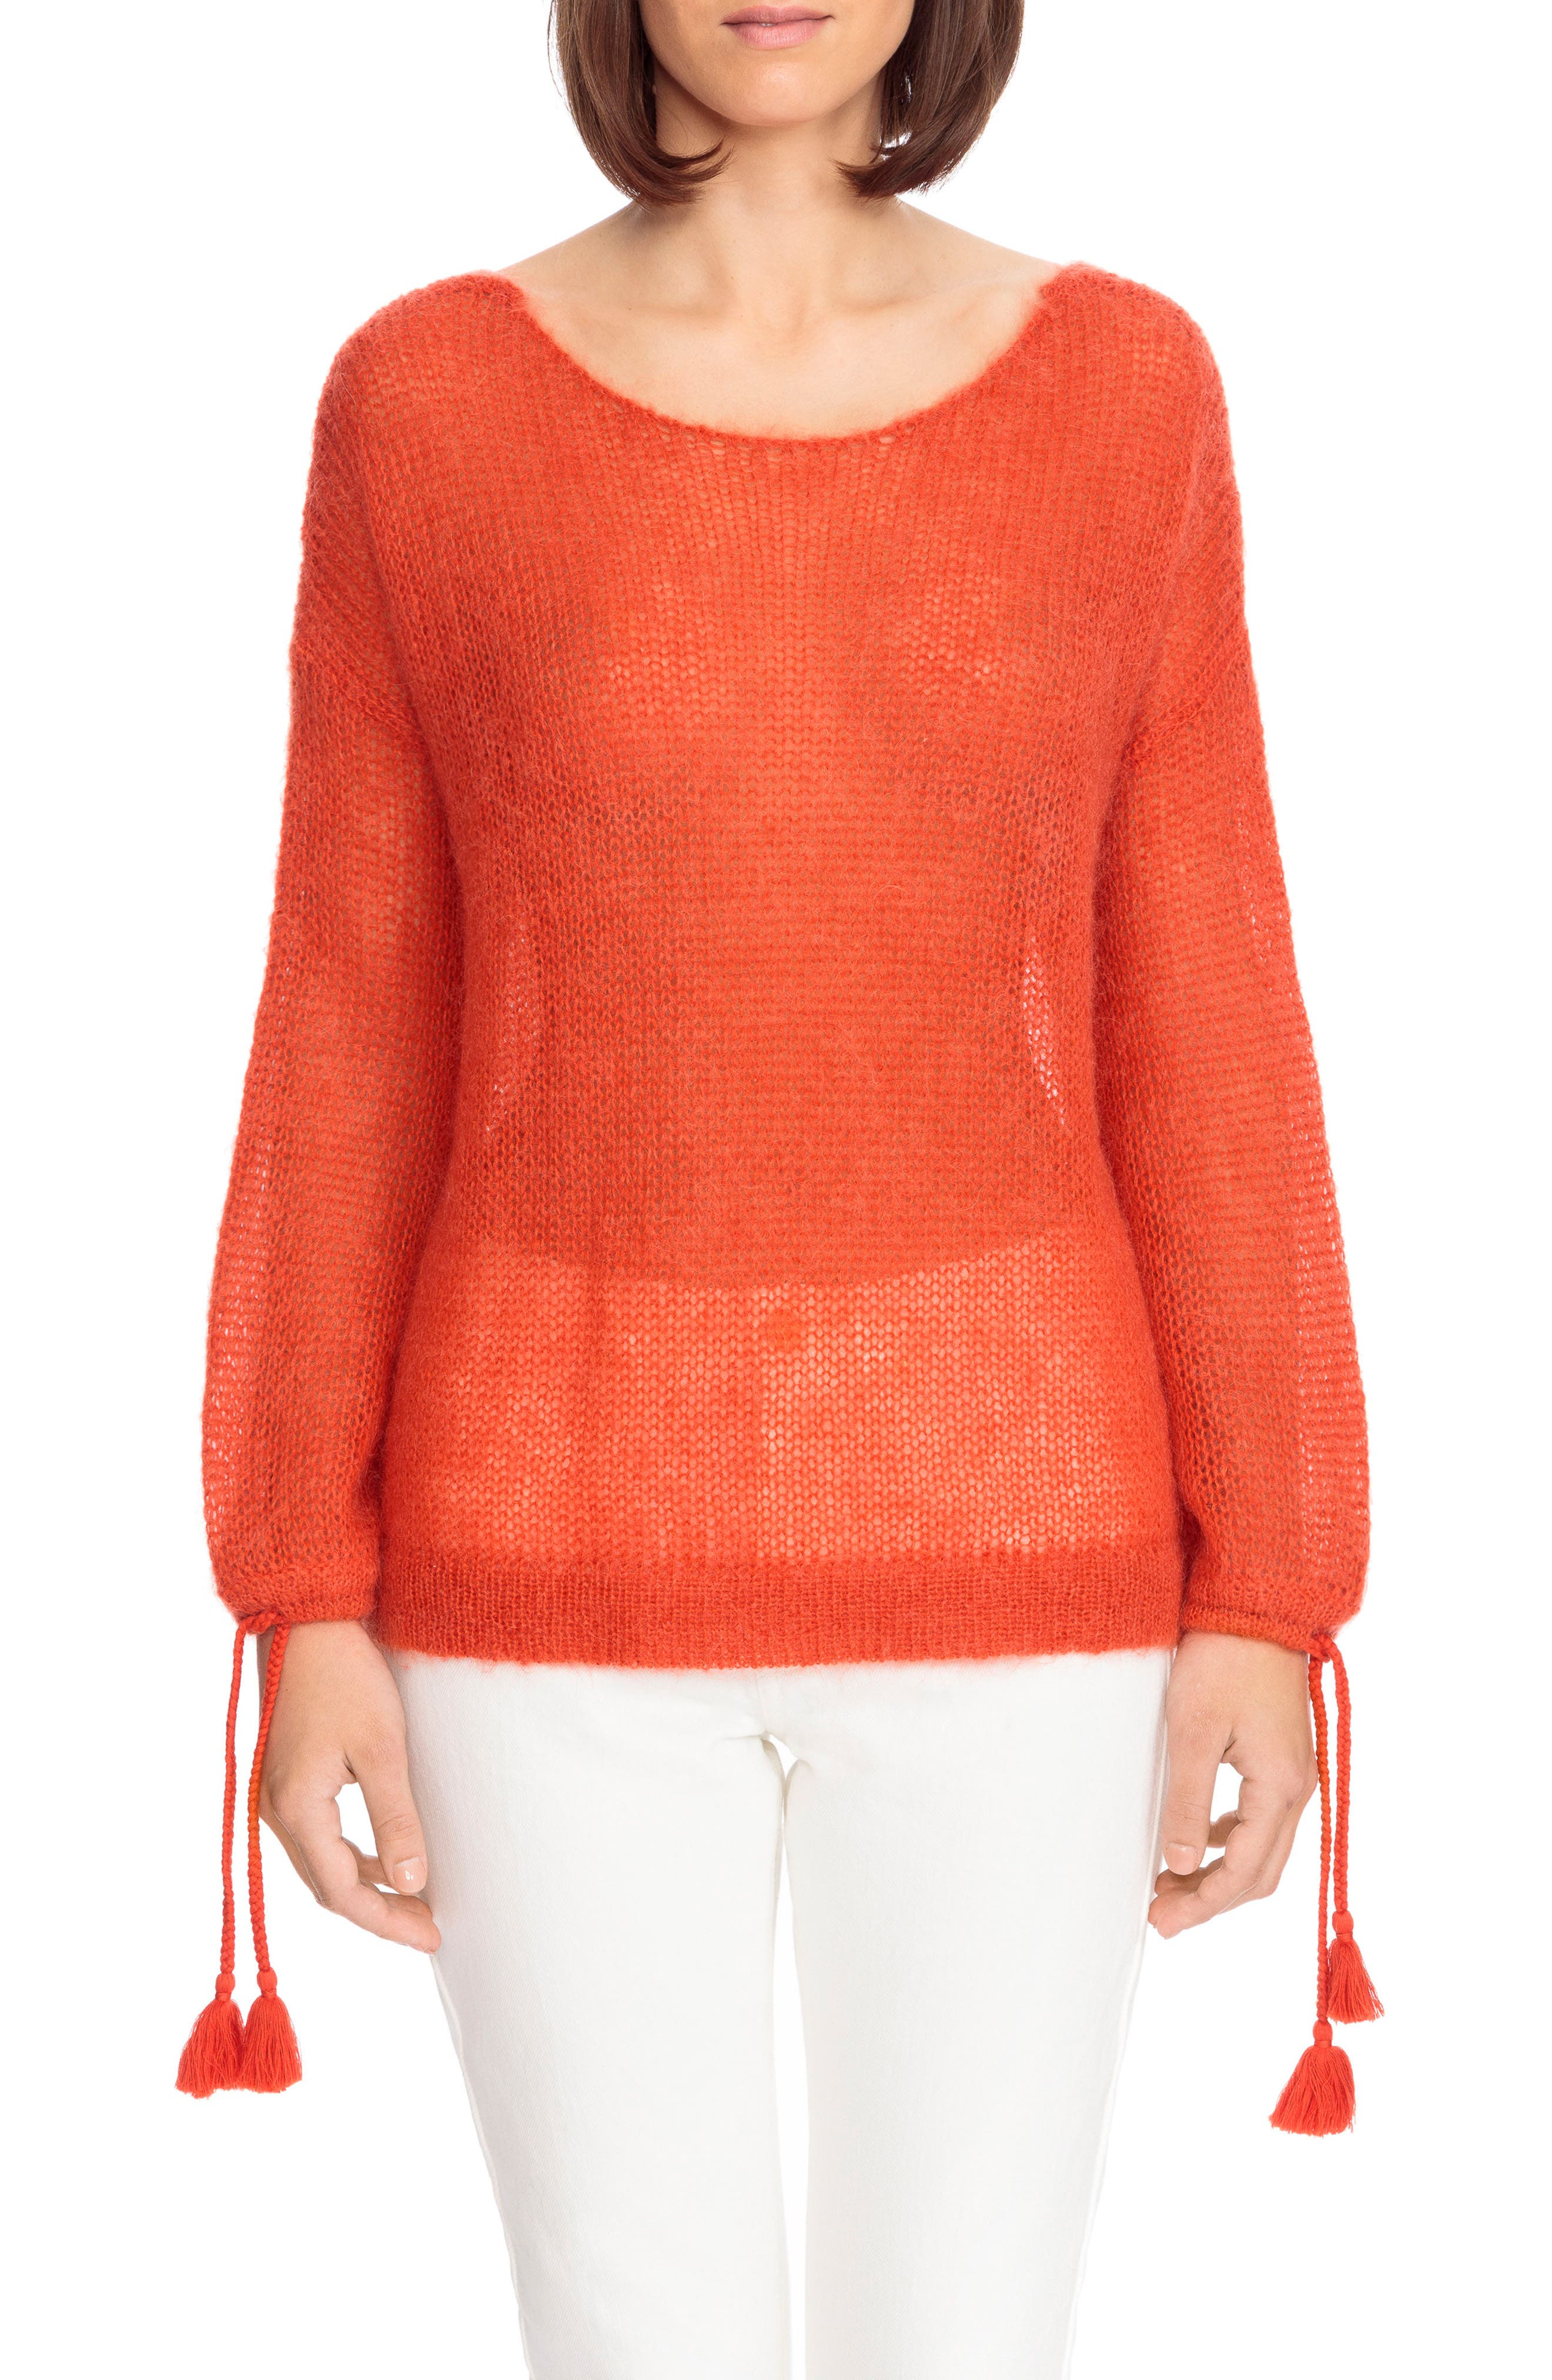 Dicky Tie Cuff Sweater,                         Main,                         color, Orange Red